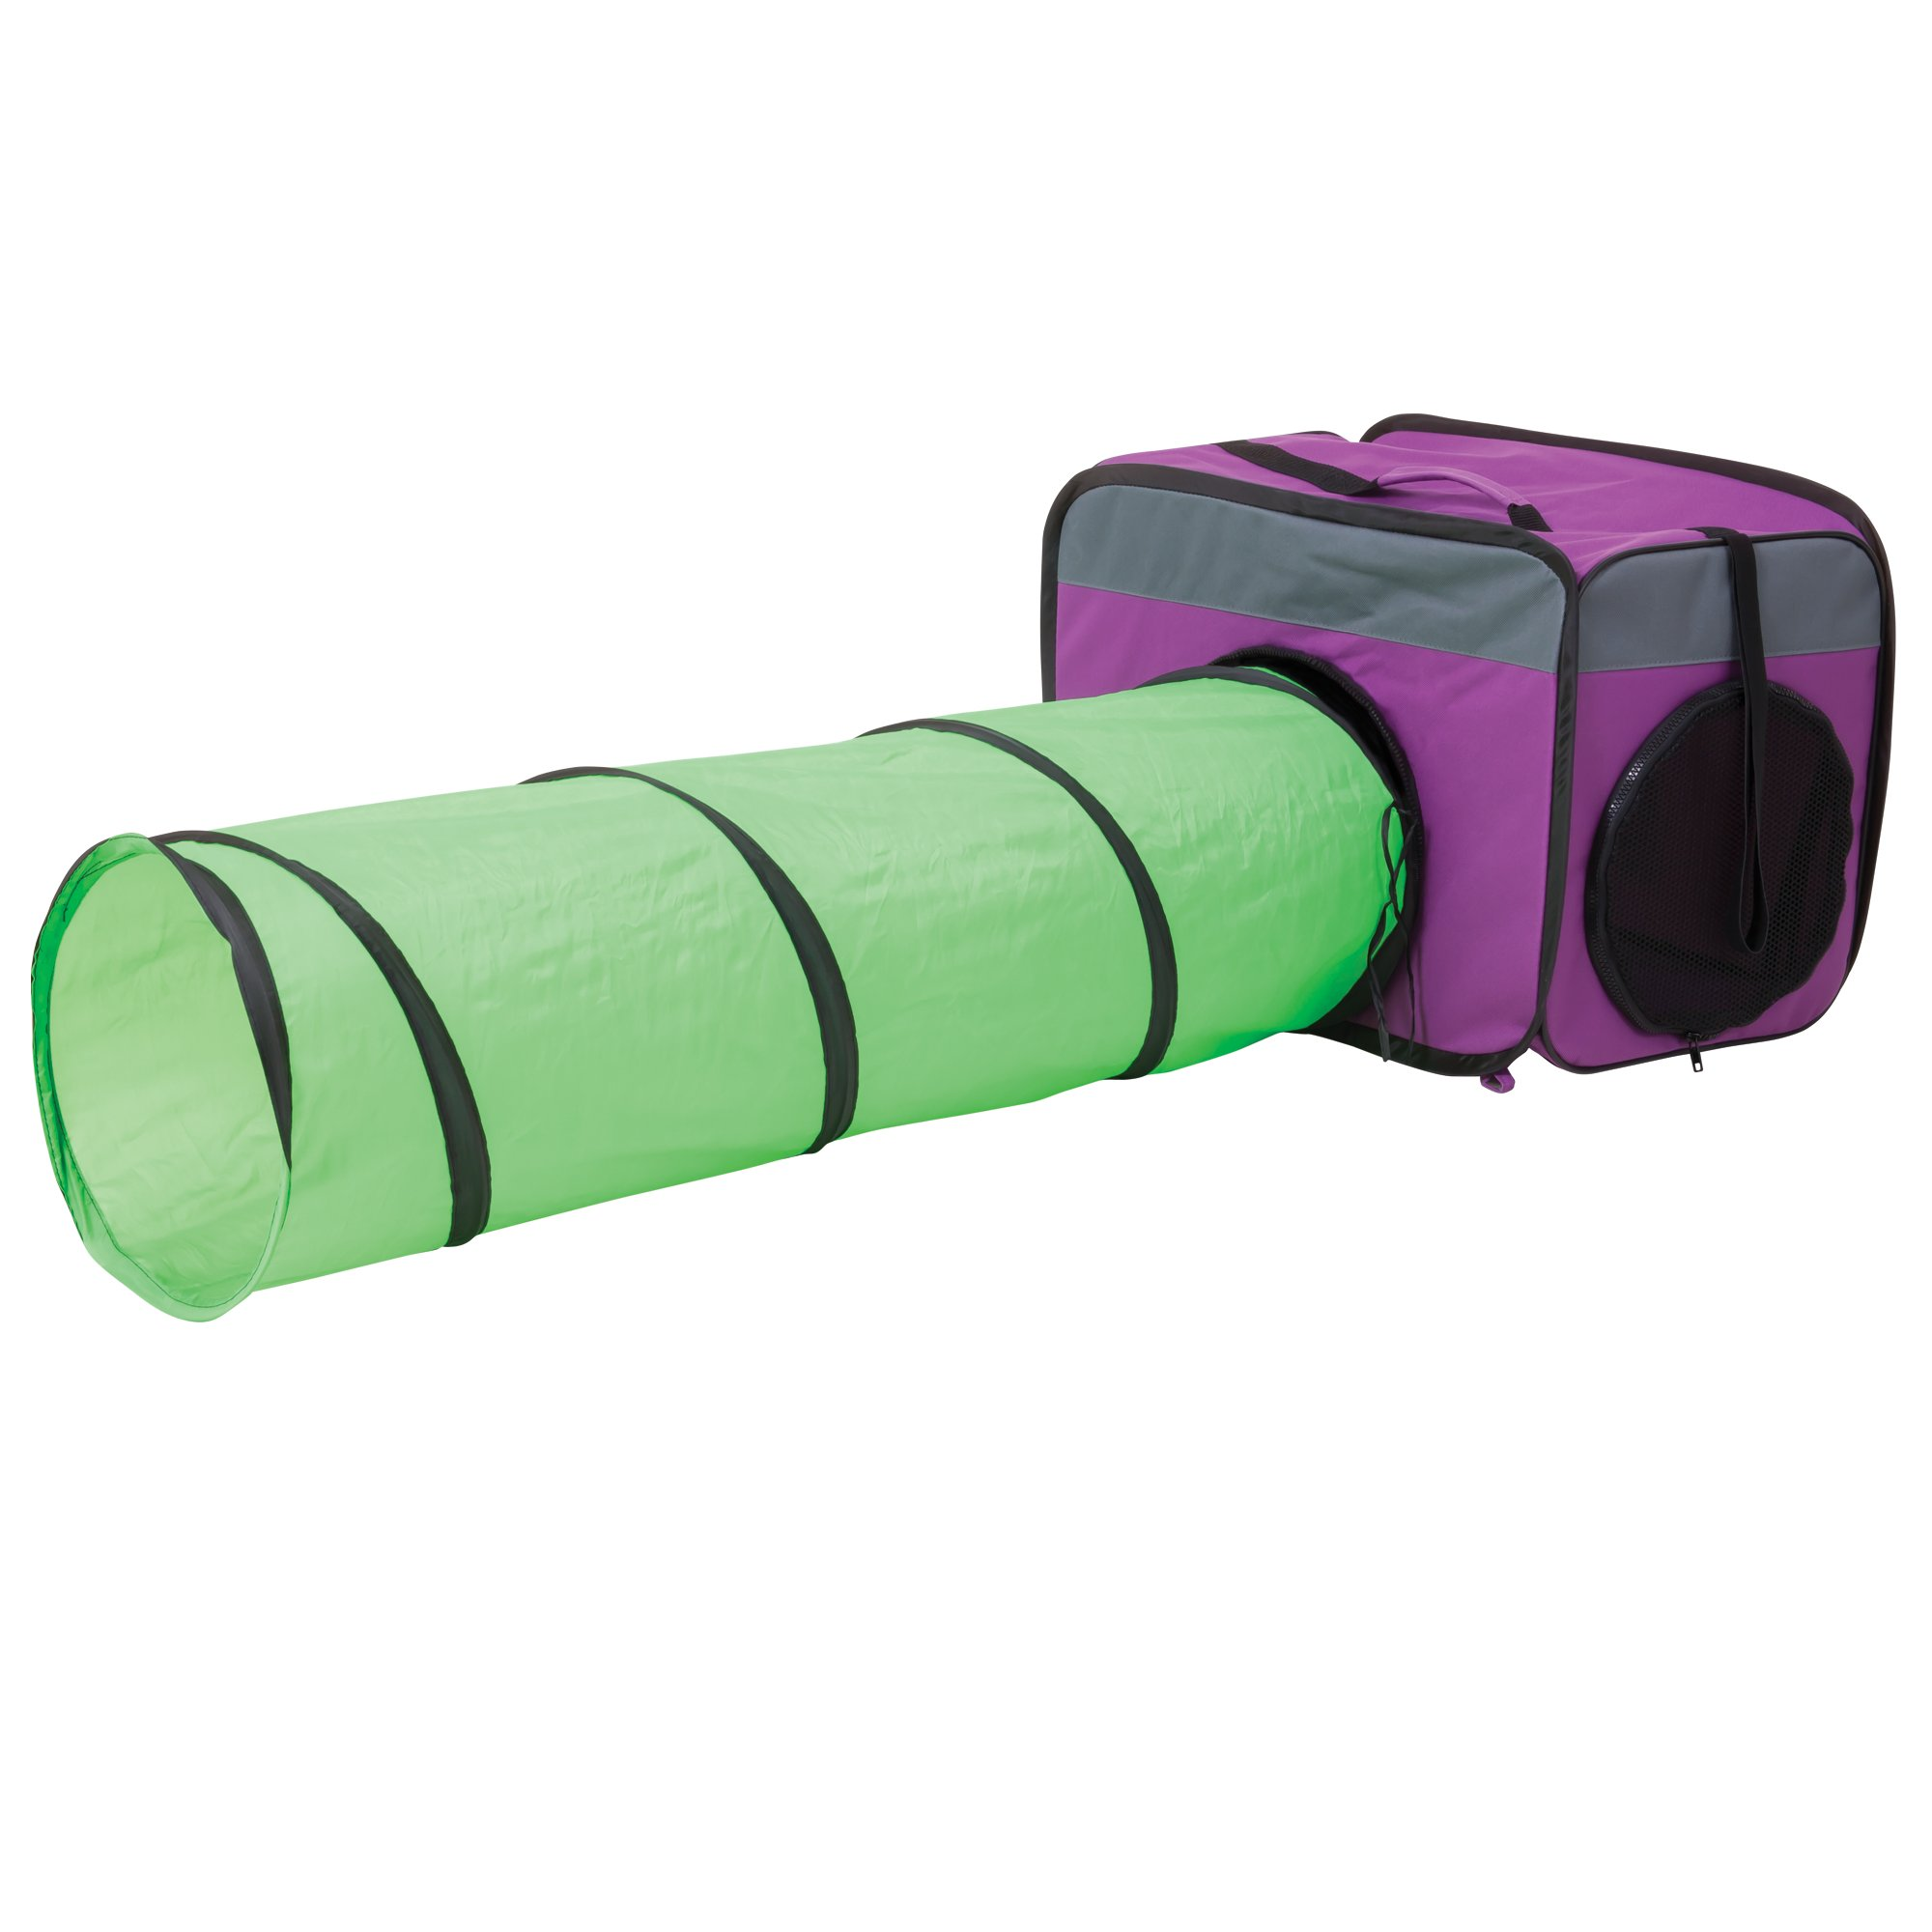 Jackson galaxy camp base hub with tunnel petco for Jackson galaxy phone number